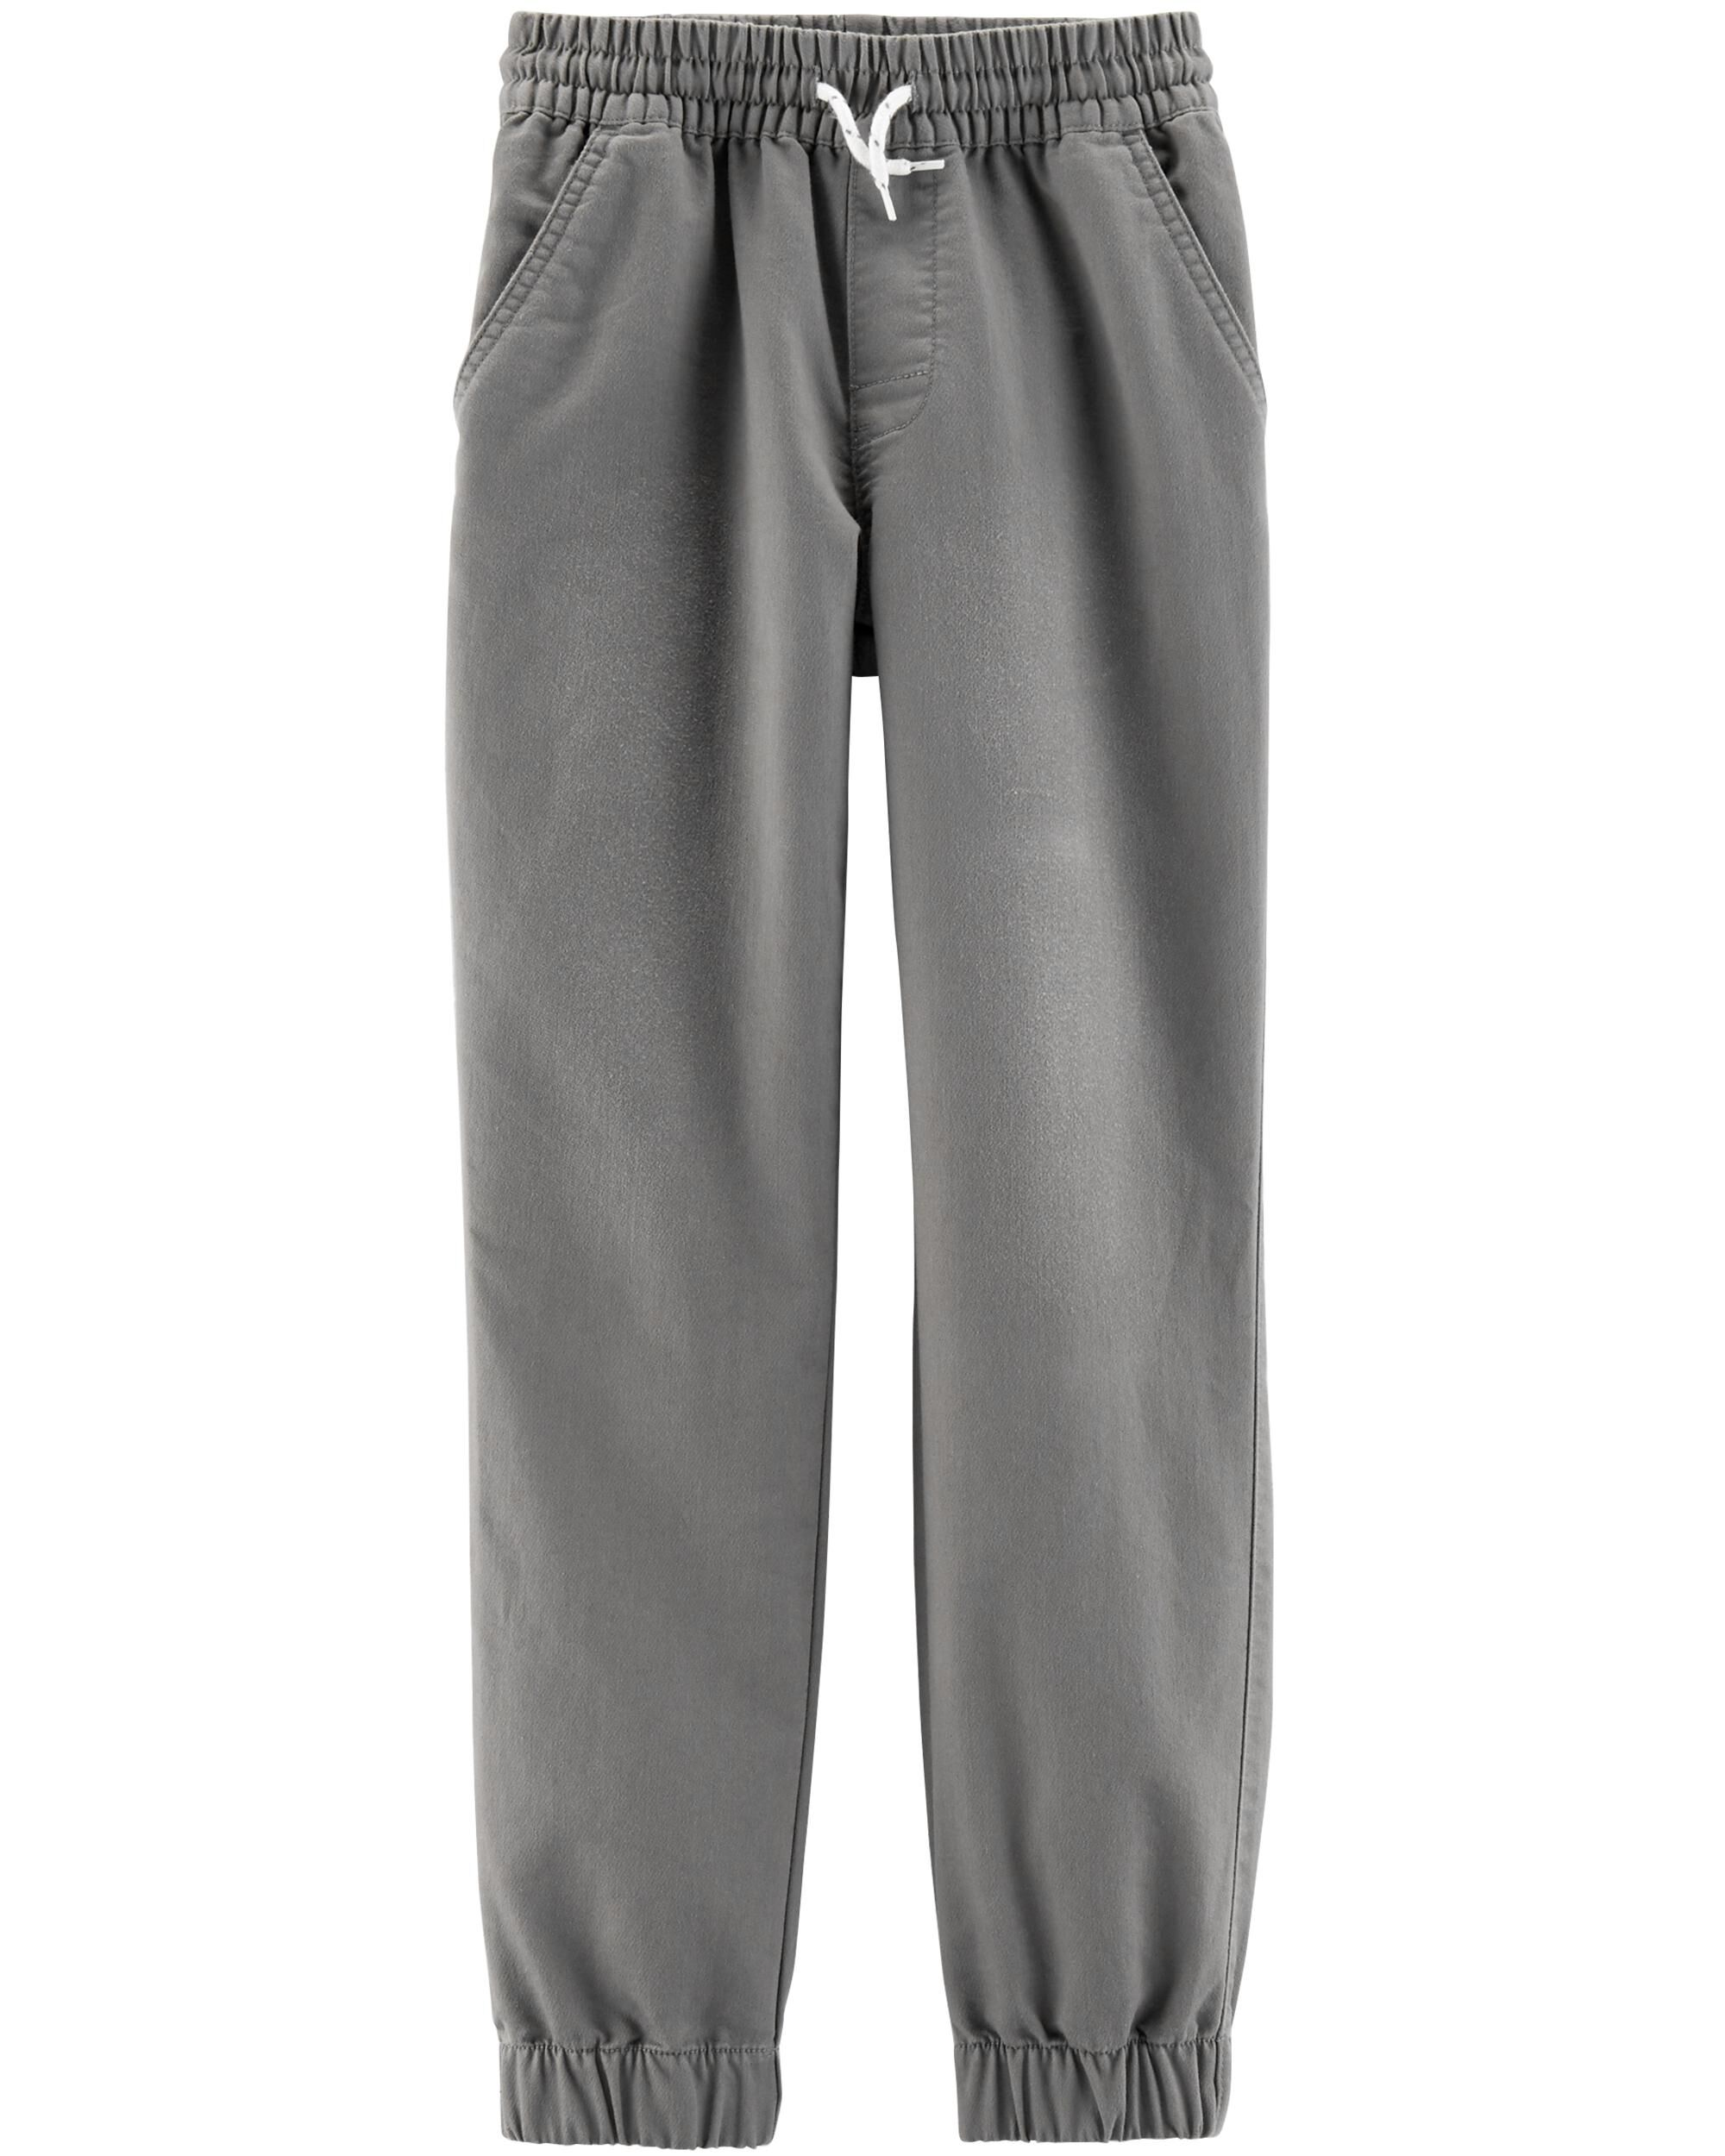 *Clearance*  Pull-On High Stretch Joggers